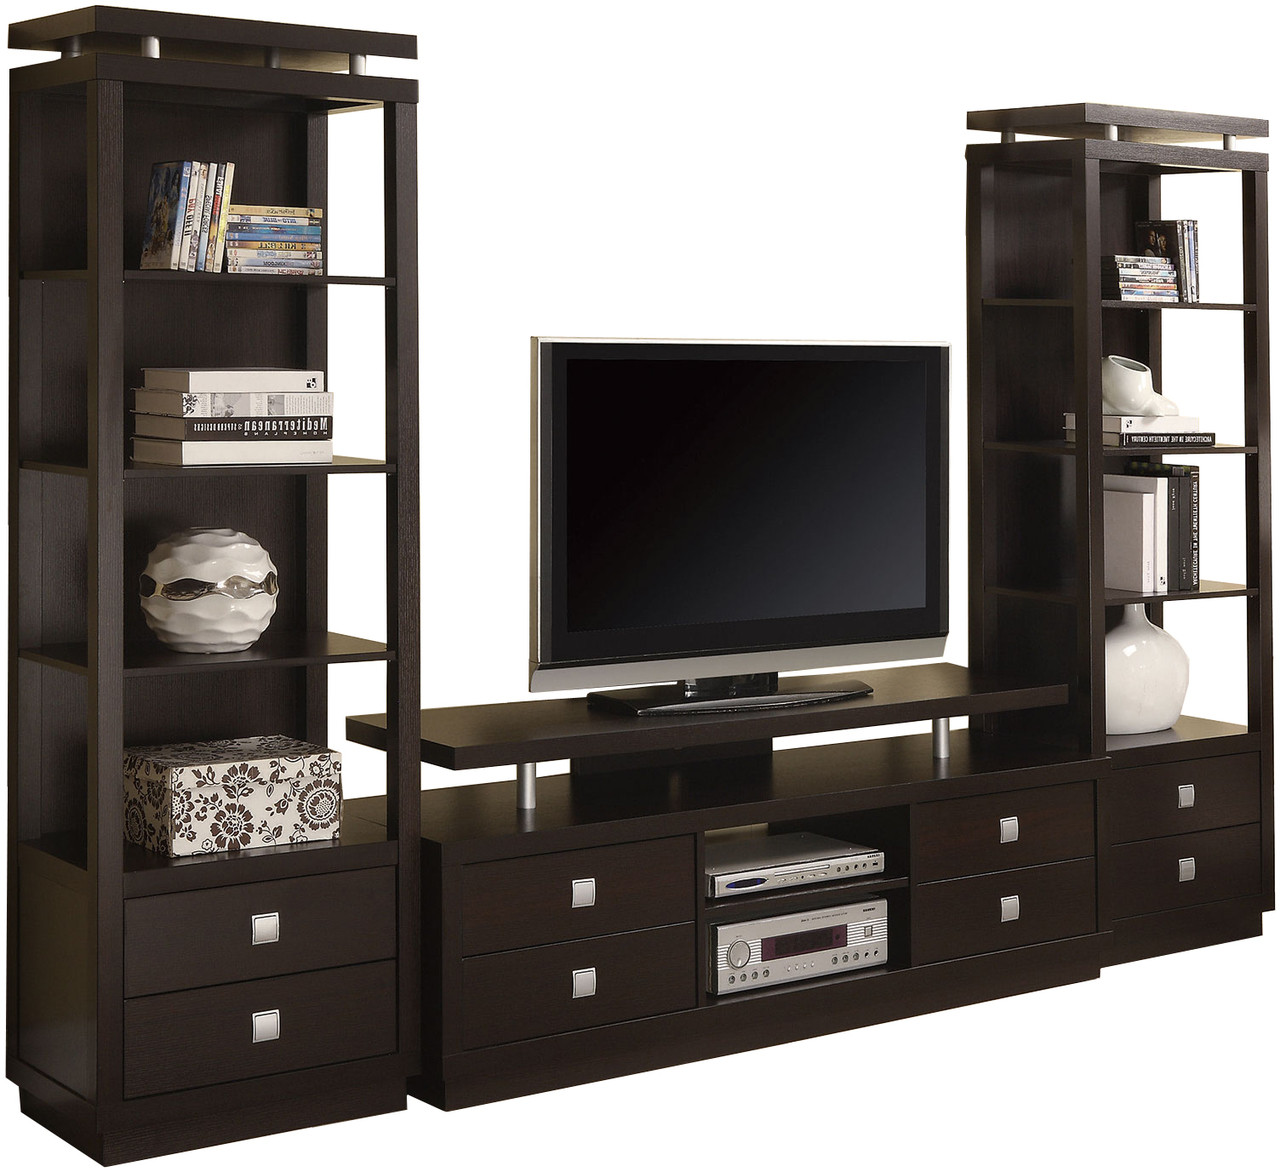 Kerri Cappuccino 3 Pc Wall Unit With Drawers Cb Furniture